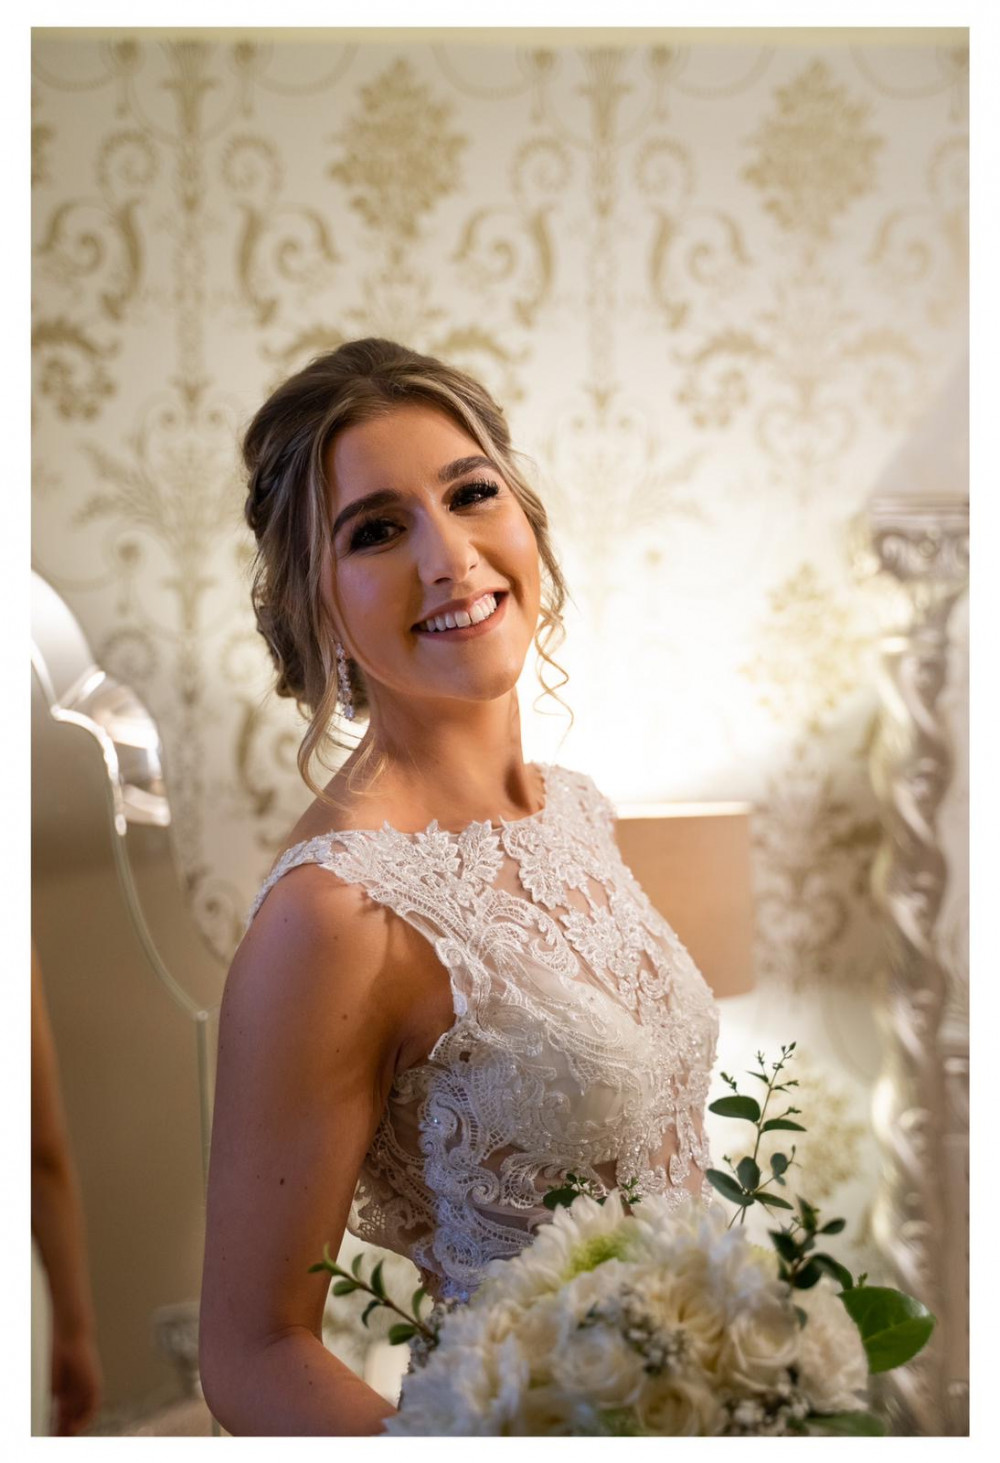 Amy on her wedding day. Stunning! - Make Me Bridal Artist: Joanne Lucas Makeup Artistry. #classic #glamorous